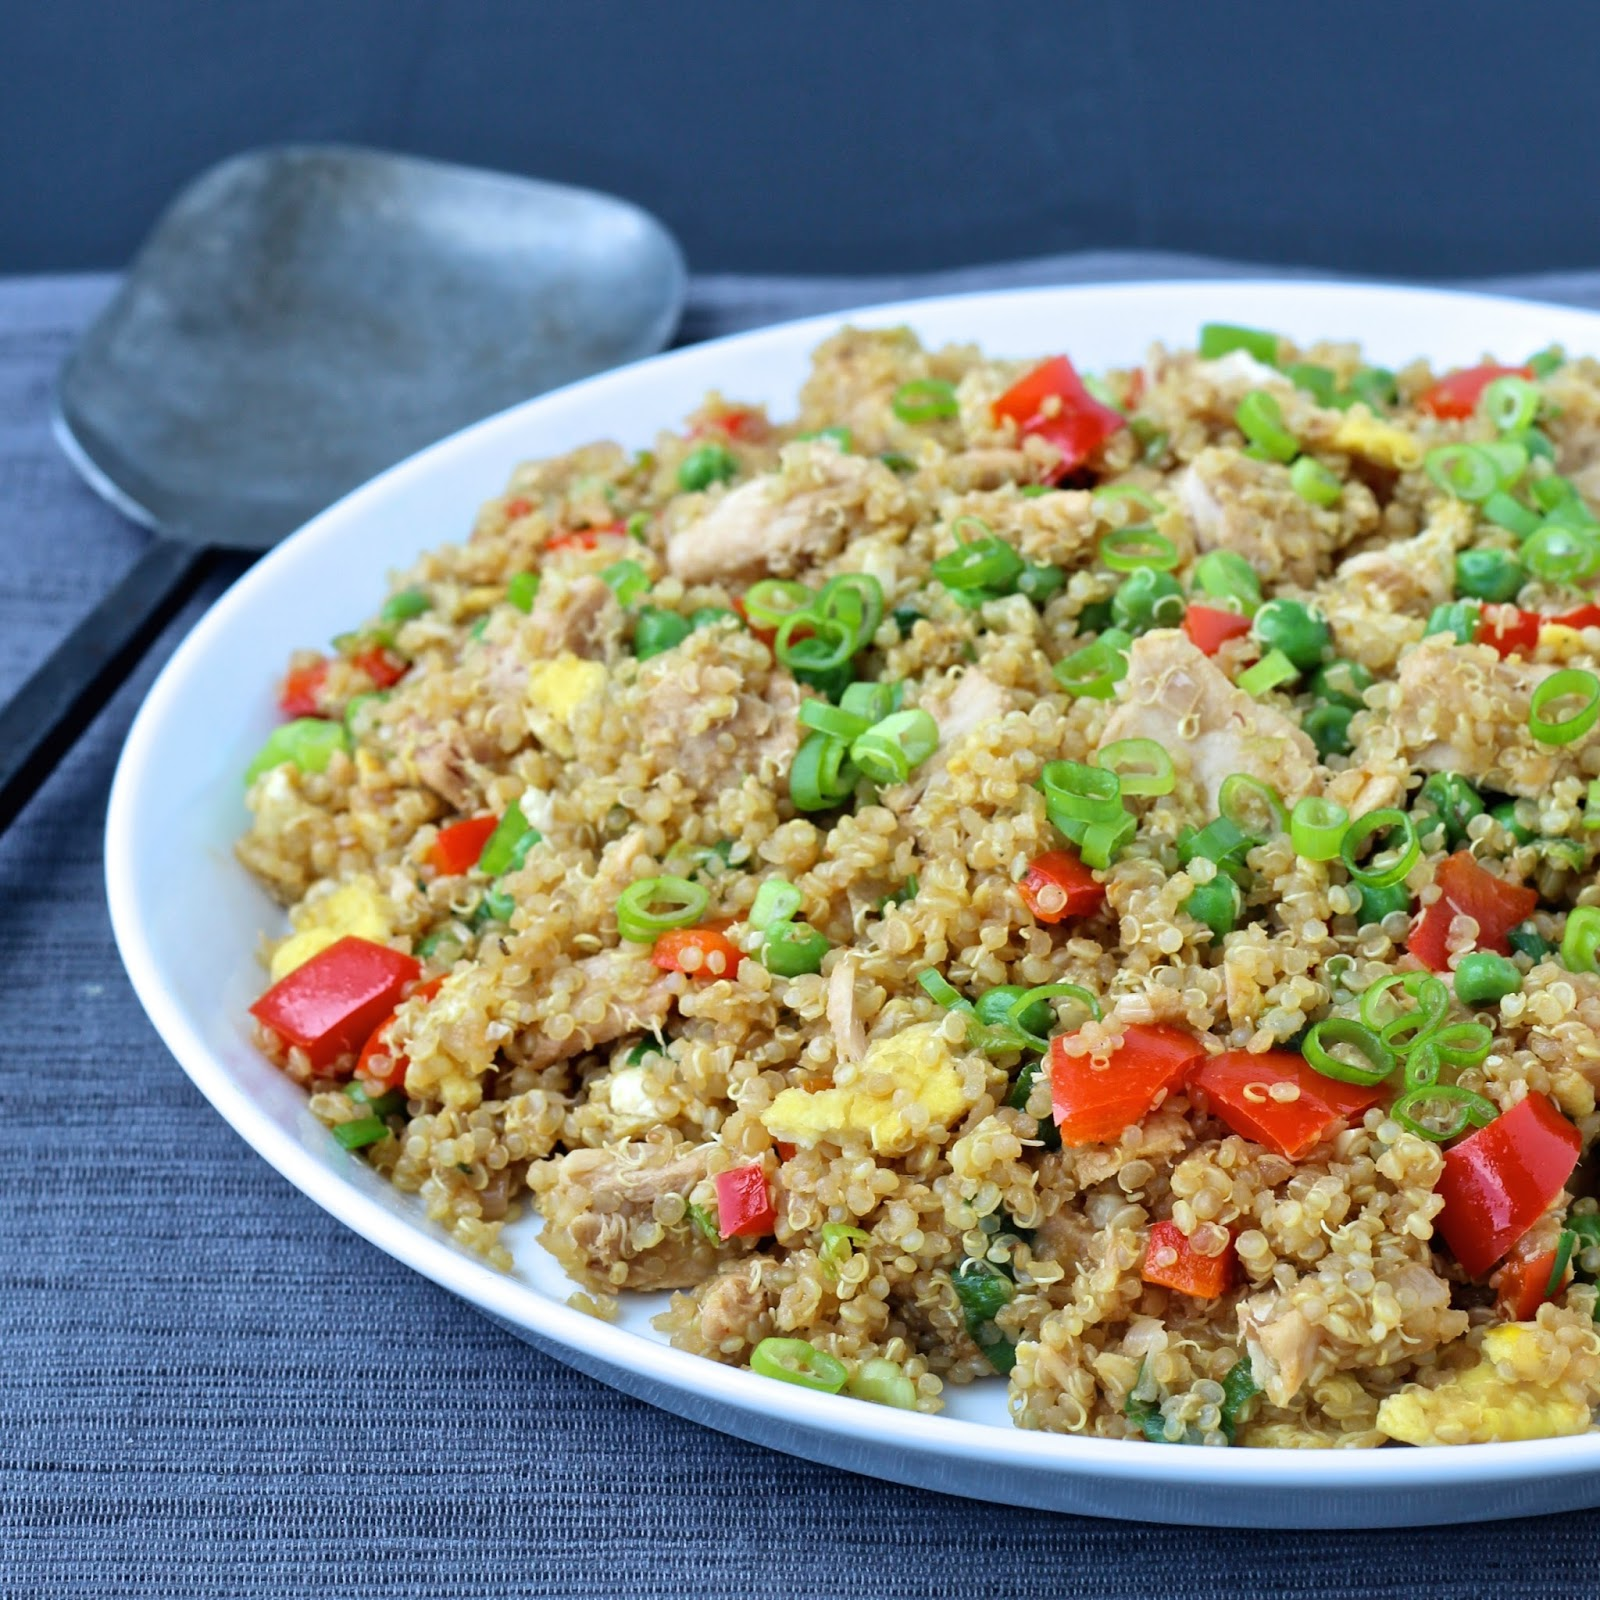 Dining with the doc quinoa fried rice with tuna the foodie friedrice tuna wildselections thefoodiephysician ccuart Gallery